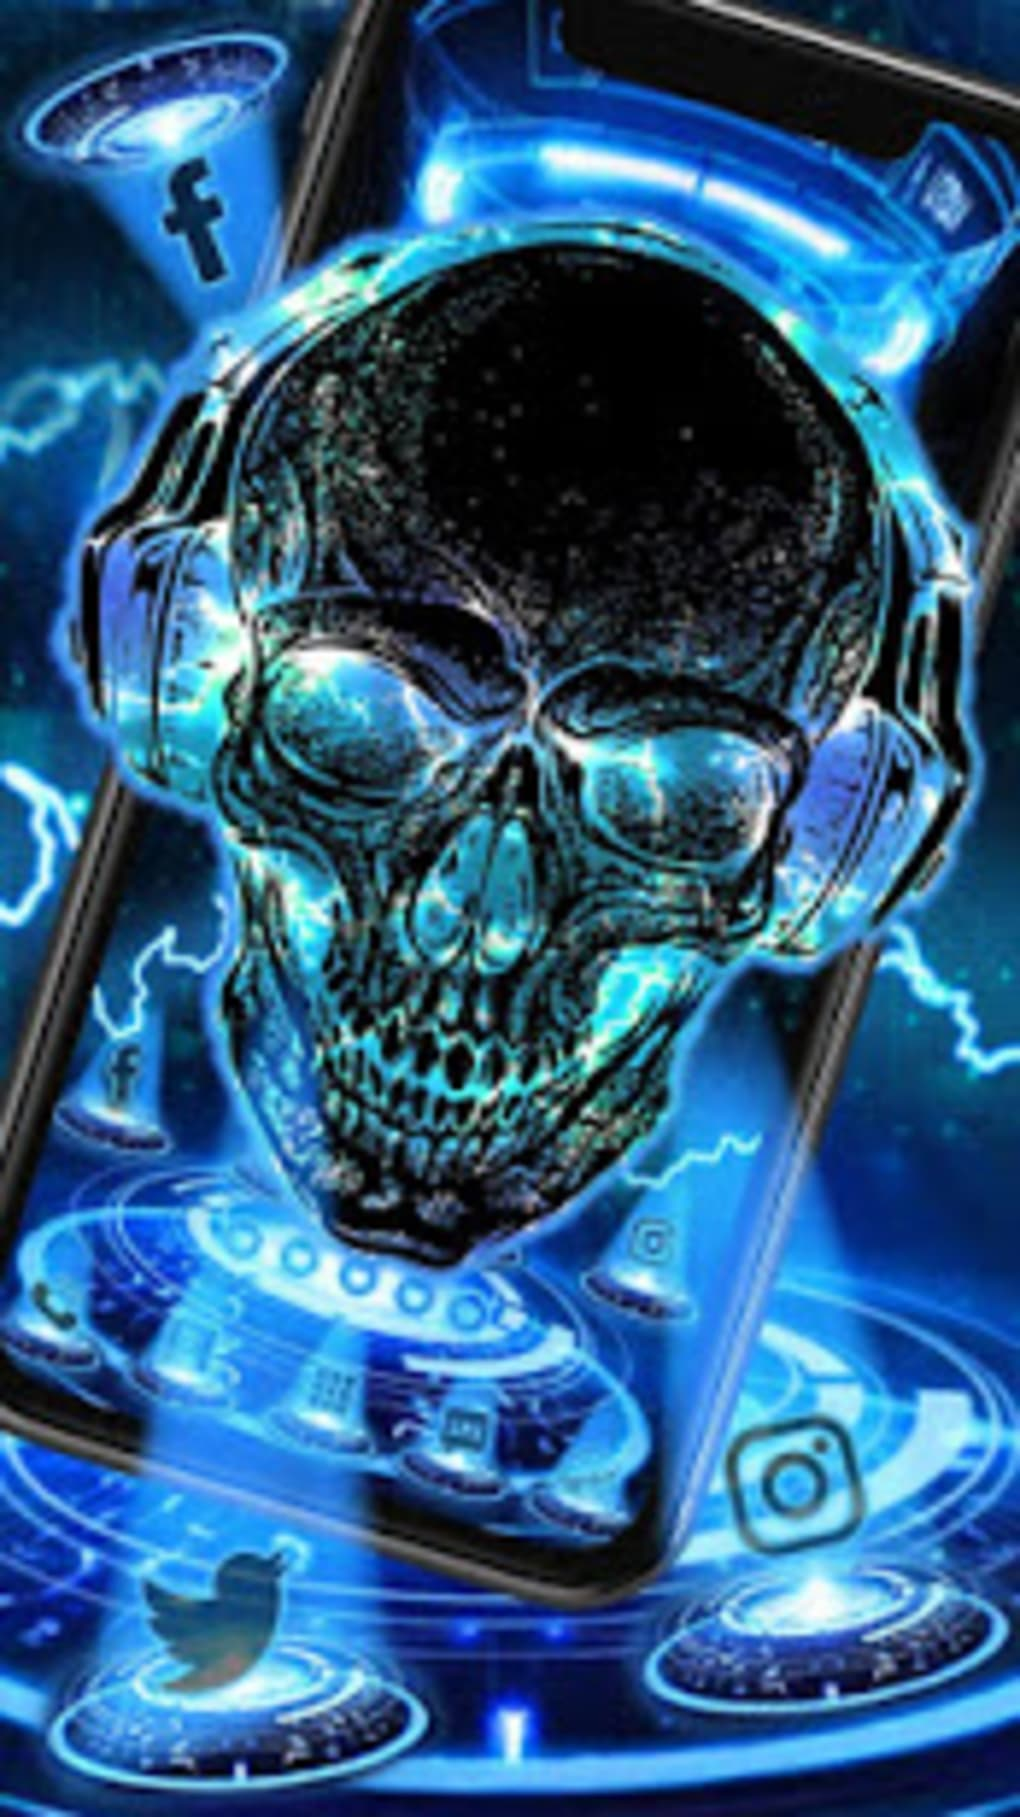 Neon Tech Skull Themes Hd Wallpapers 3d Icons Tech Hd